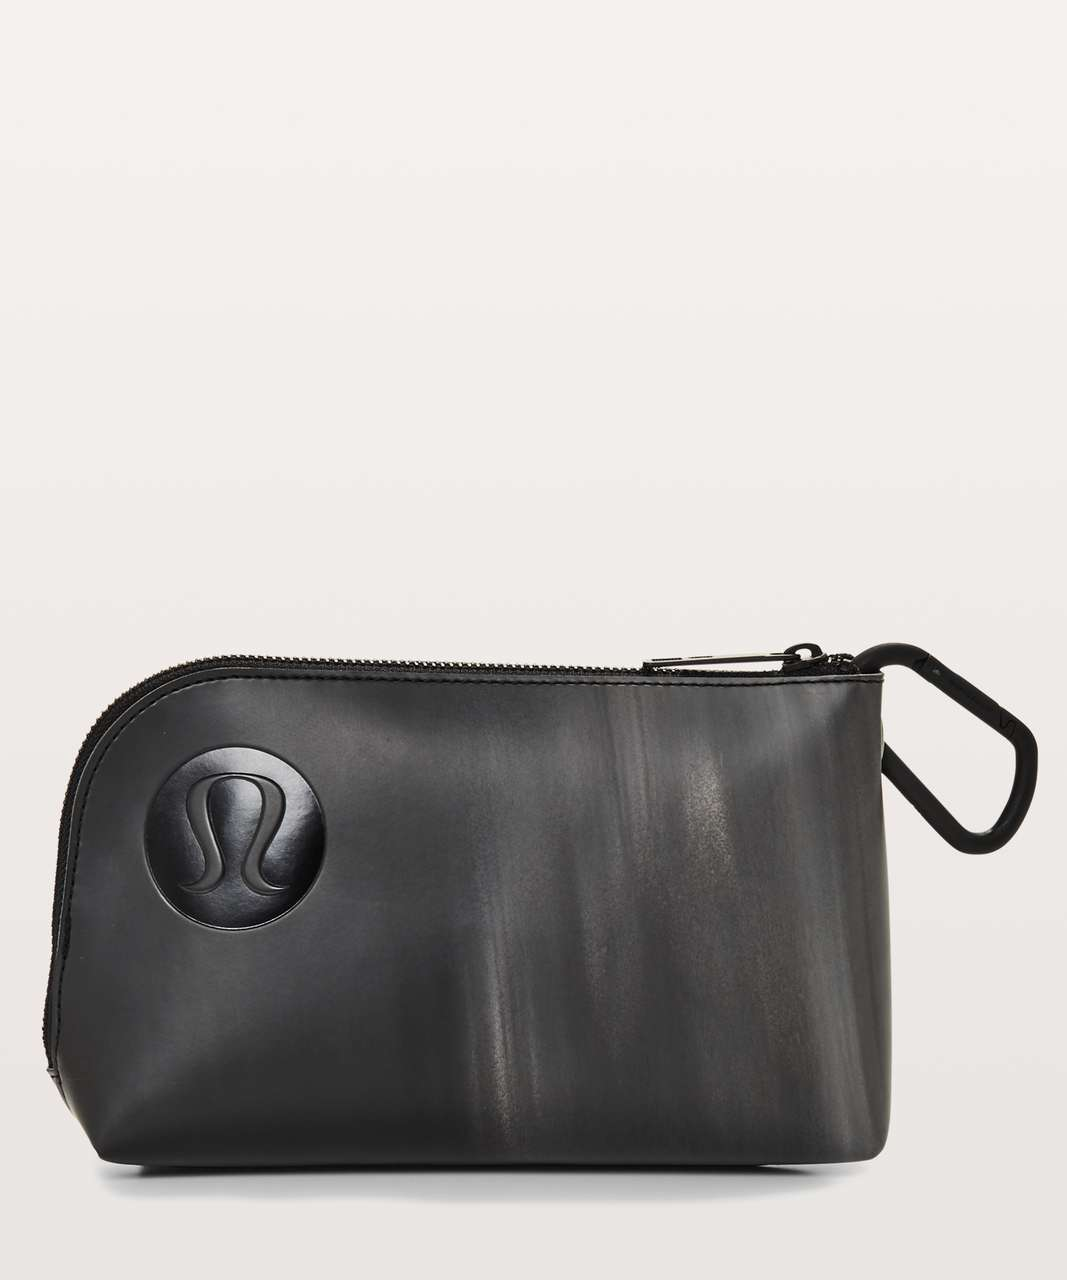 Lululemon Off The Mat Pouch *2L - Black / White